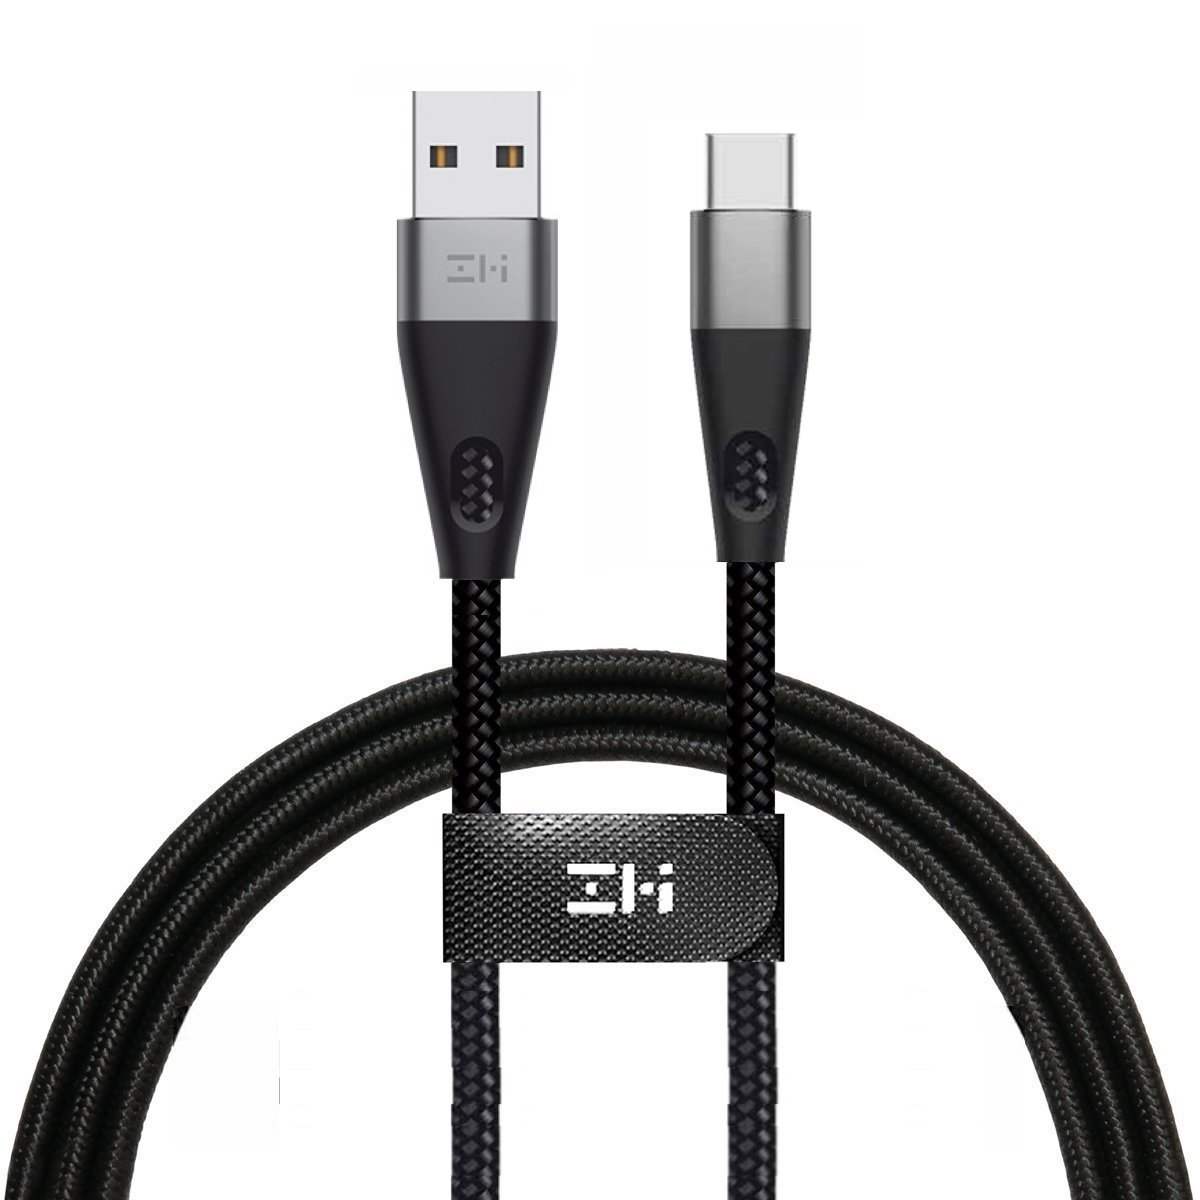 ZMI 3A Hi-Tension USB Type-A to USB Type-C Cable - Black